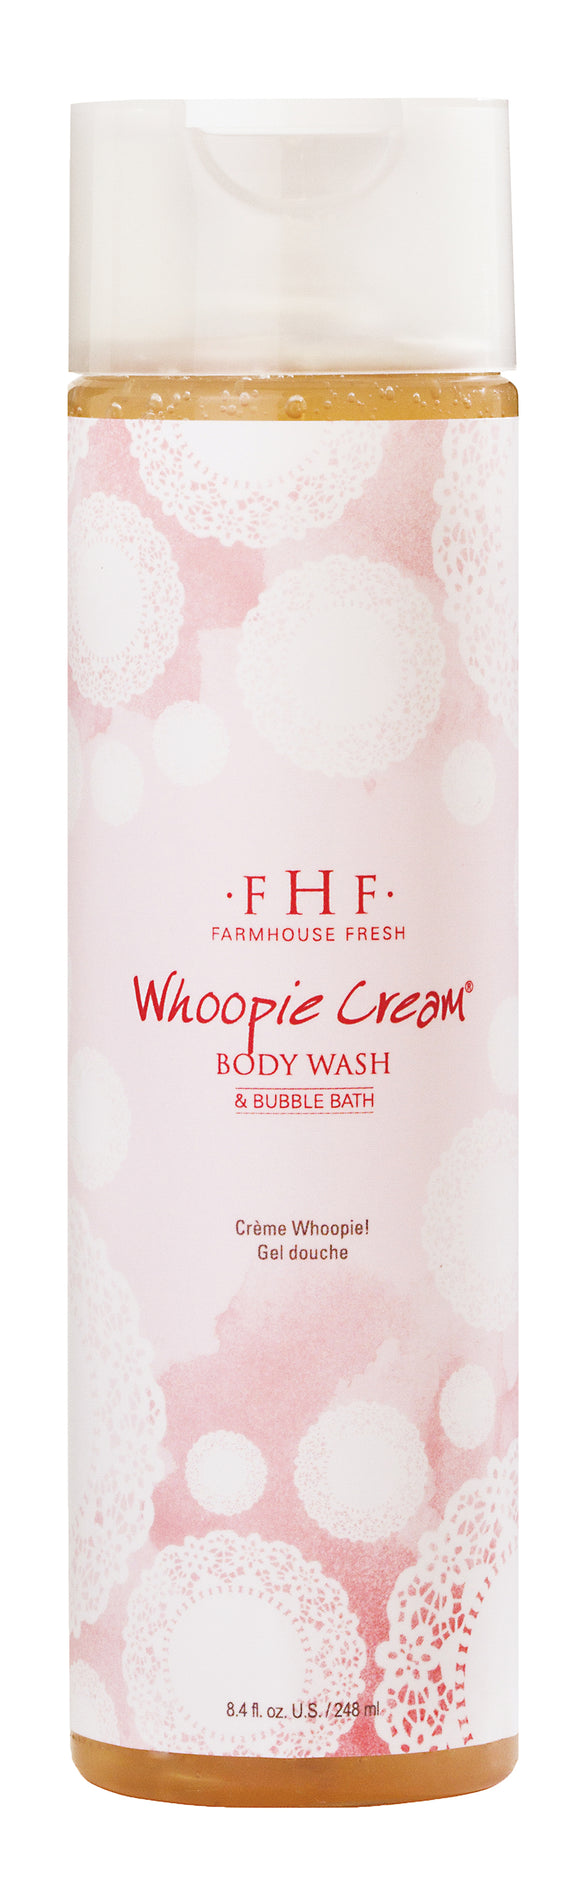 Whoopie Cream Body Wash 8.4 oz by Farmhouse Fresh